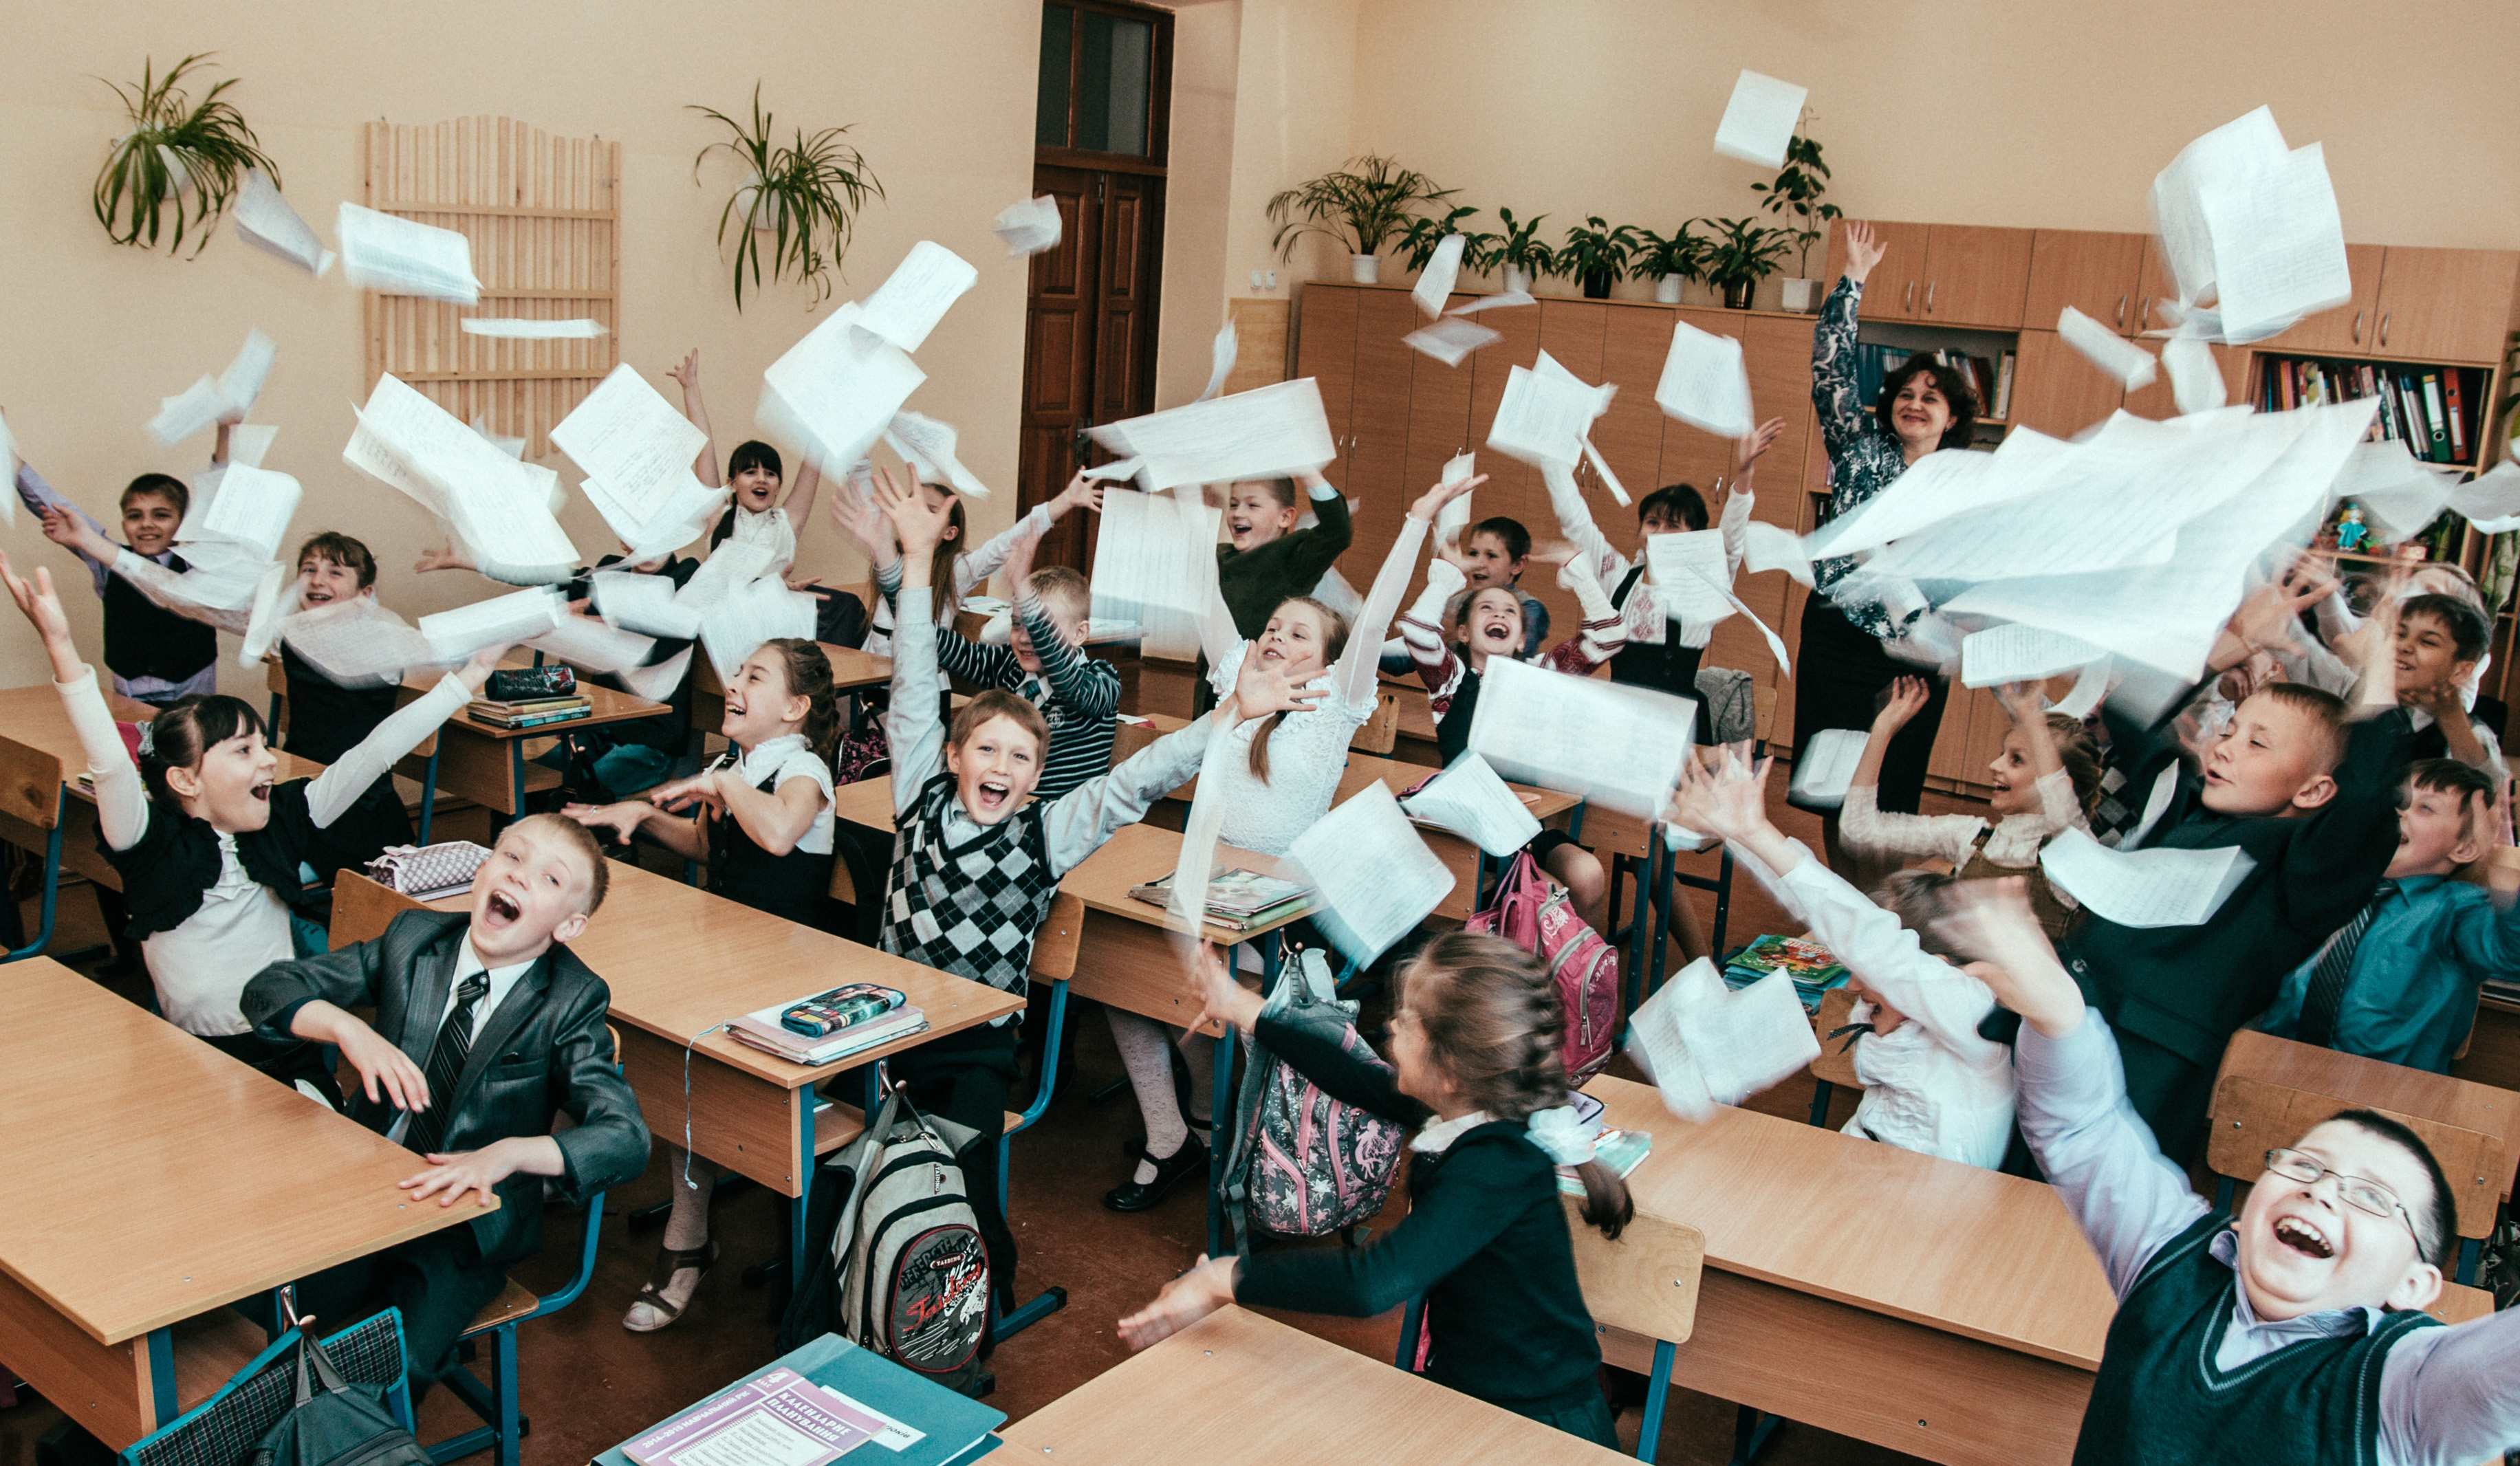 cropped_students-throw-paper-in-classroom